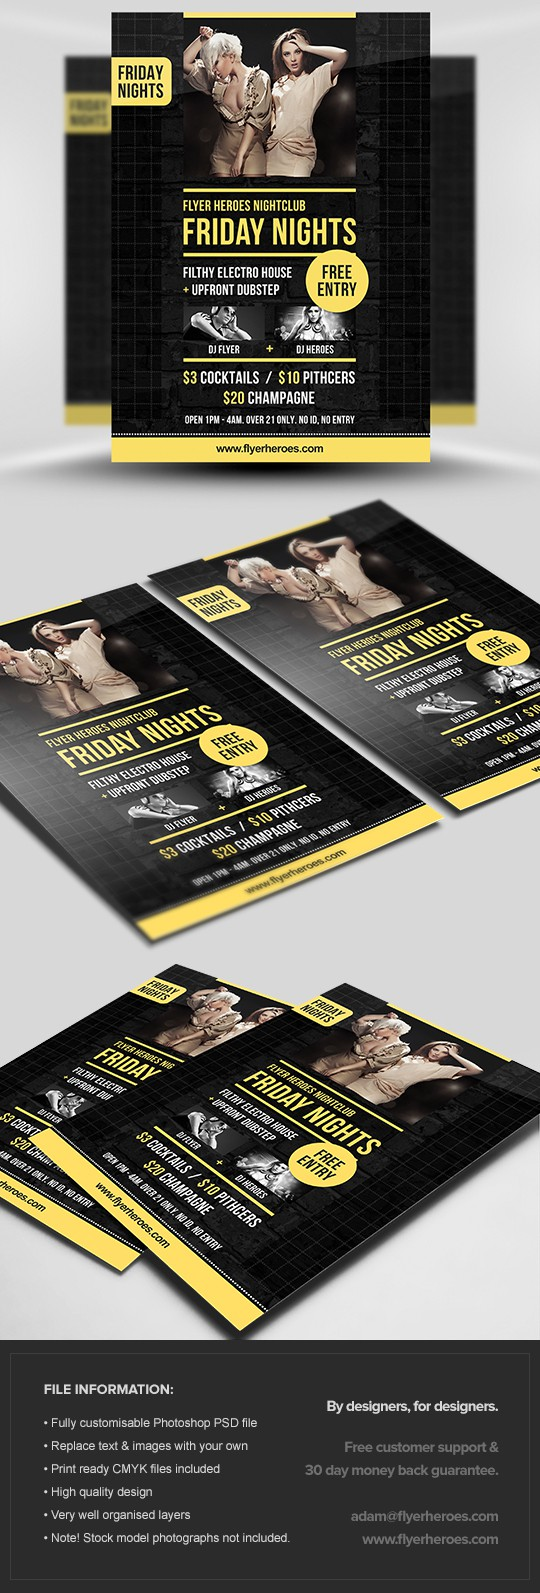 Friday Nights Flyer Template